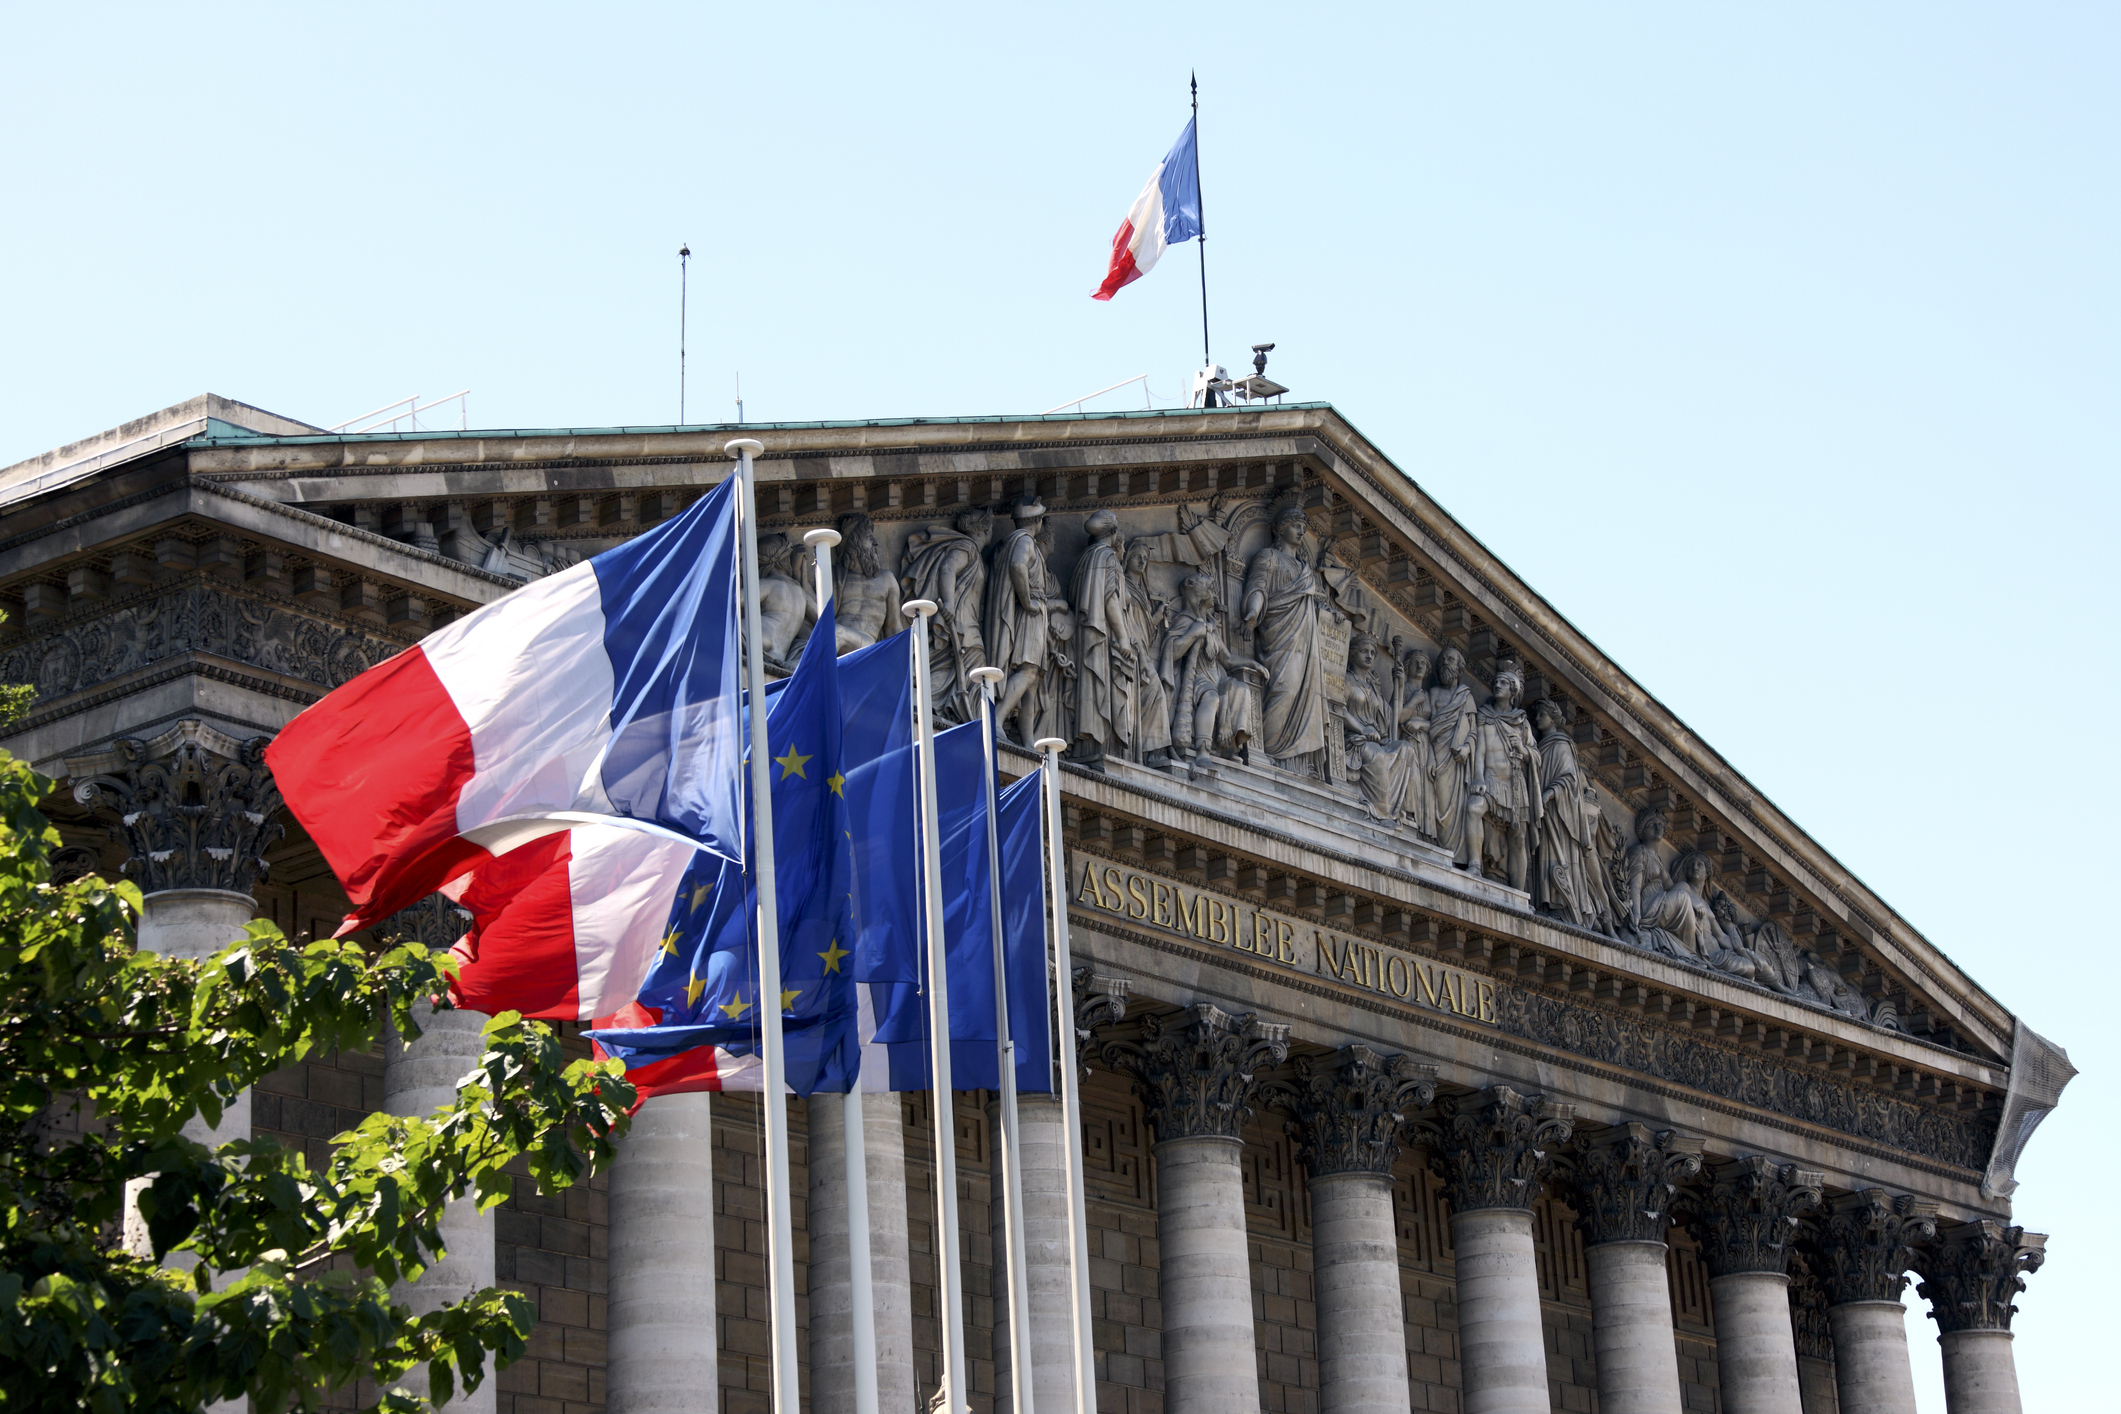 The French National Assembly, home to the nation's parliament passed its Islamophobic anti-separatism bill